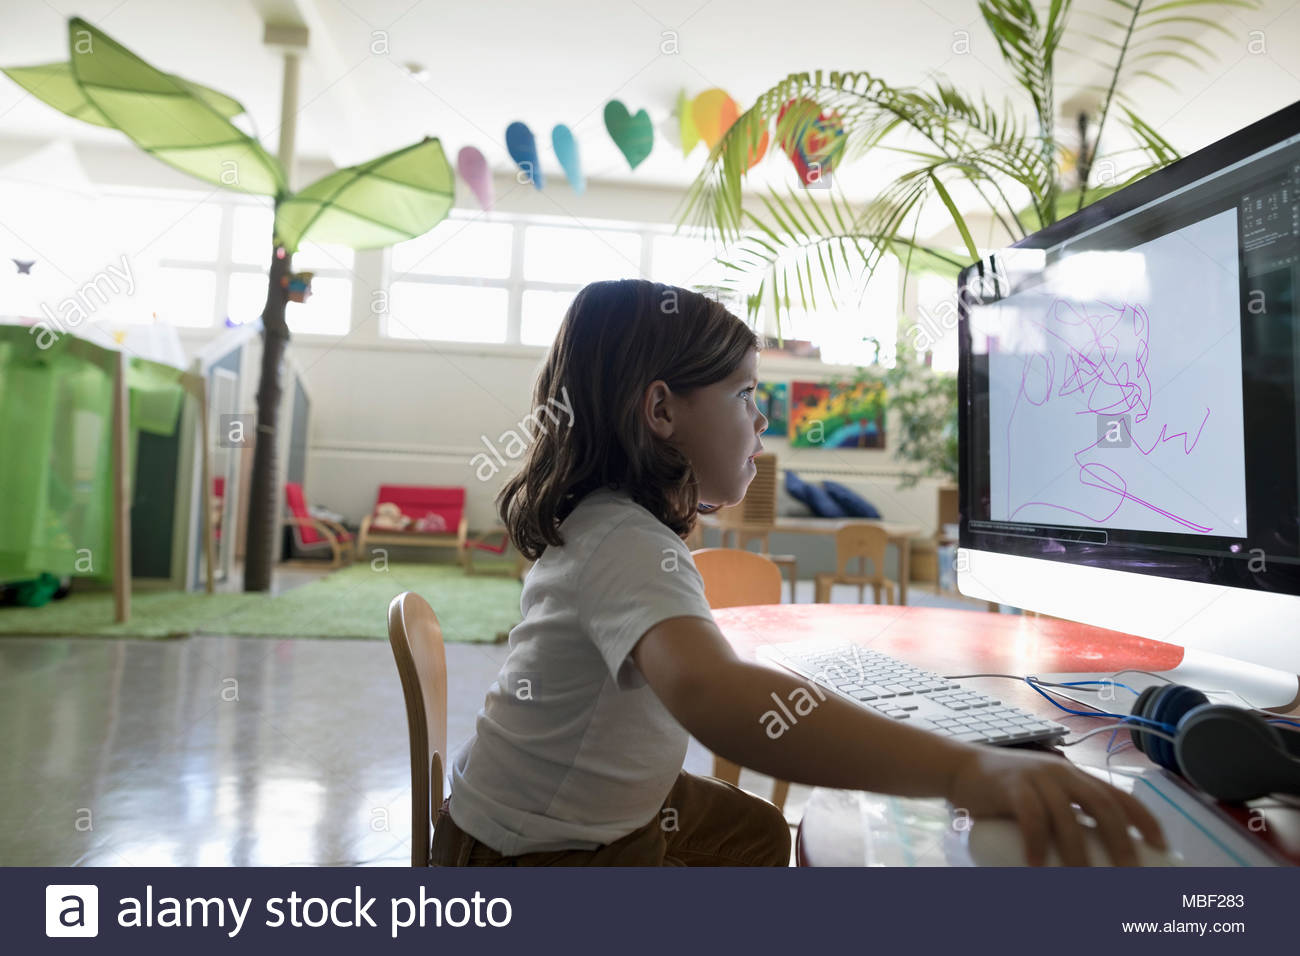 Preschool girl student drawing at computer in classroom - Stock Image